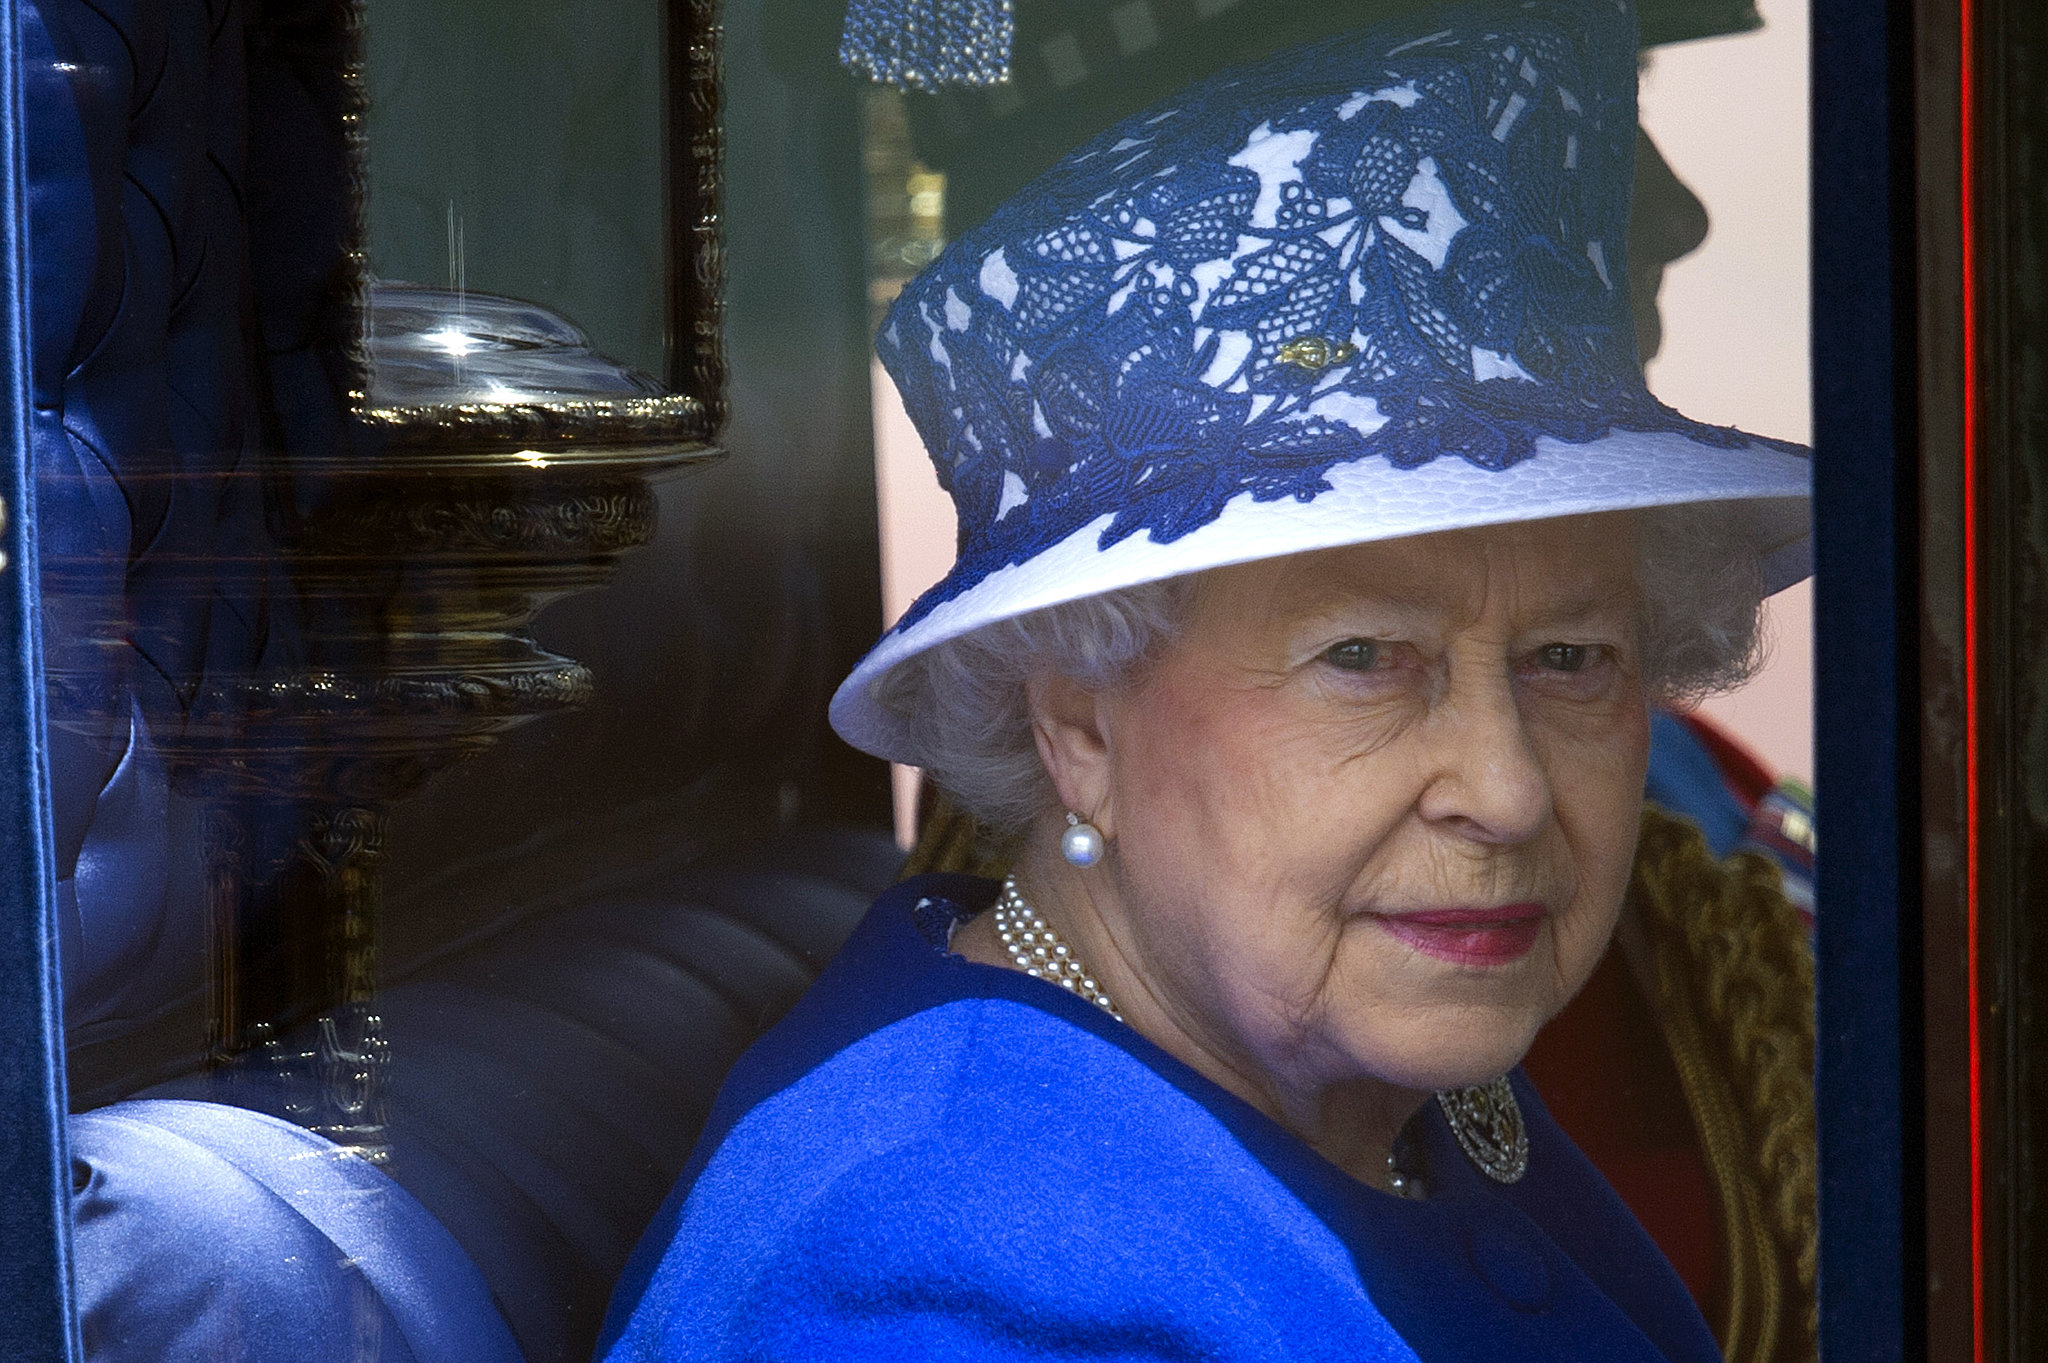 The queen looked out at the crowd from her carriage.